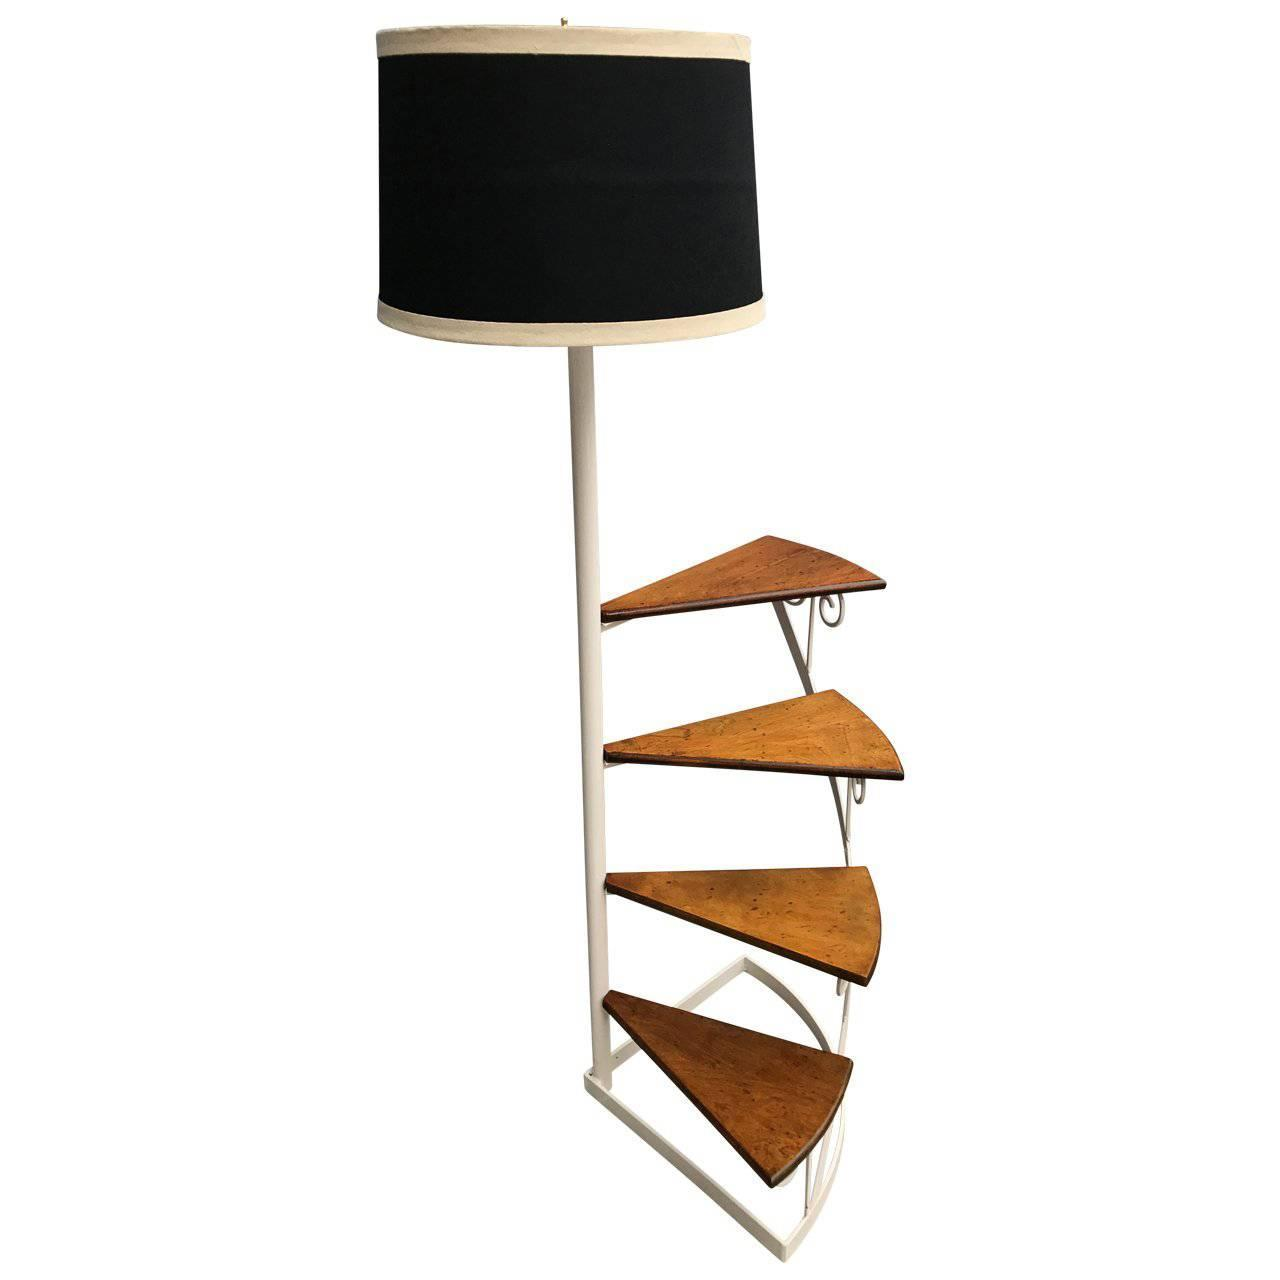 American Spiral Library Steps And Floor Lamp